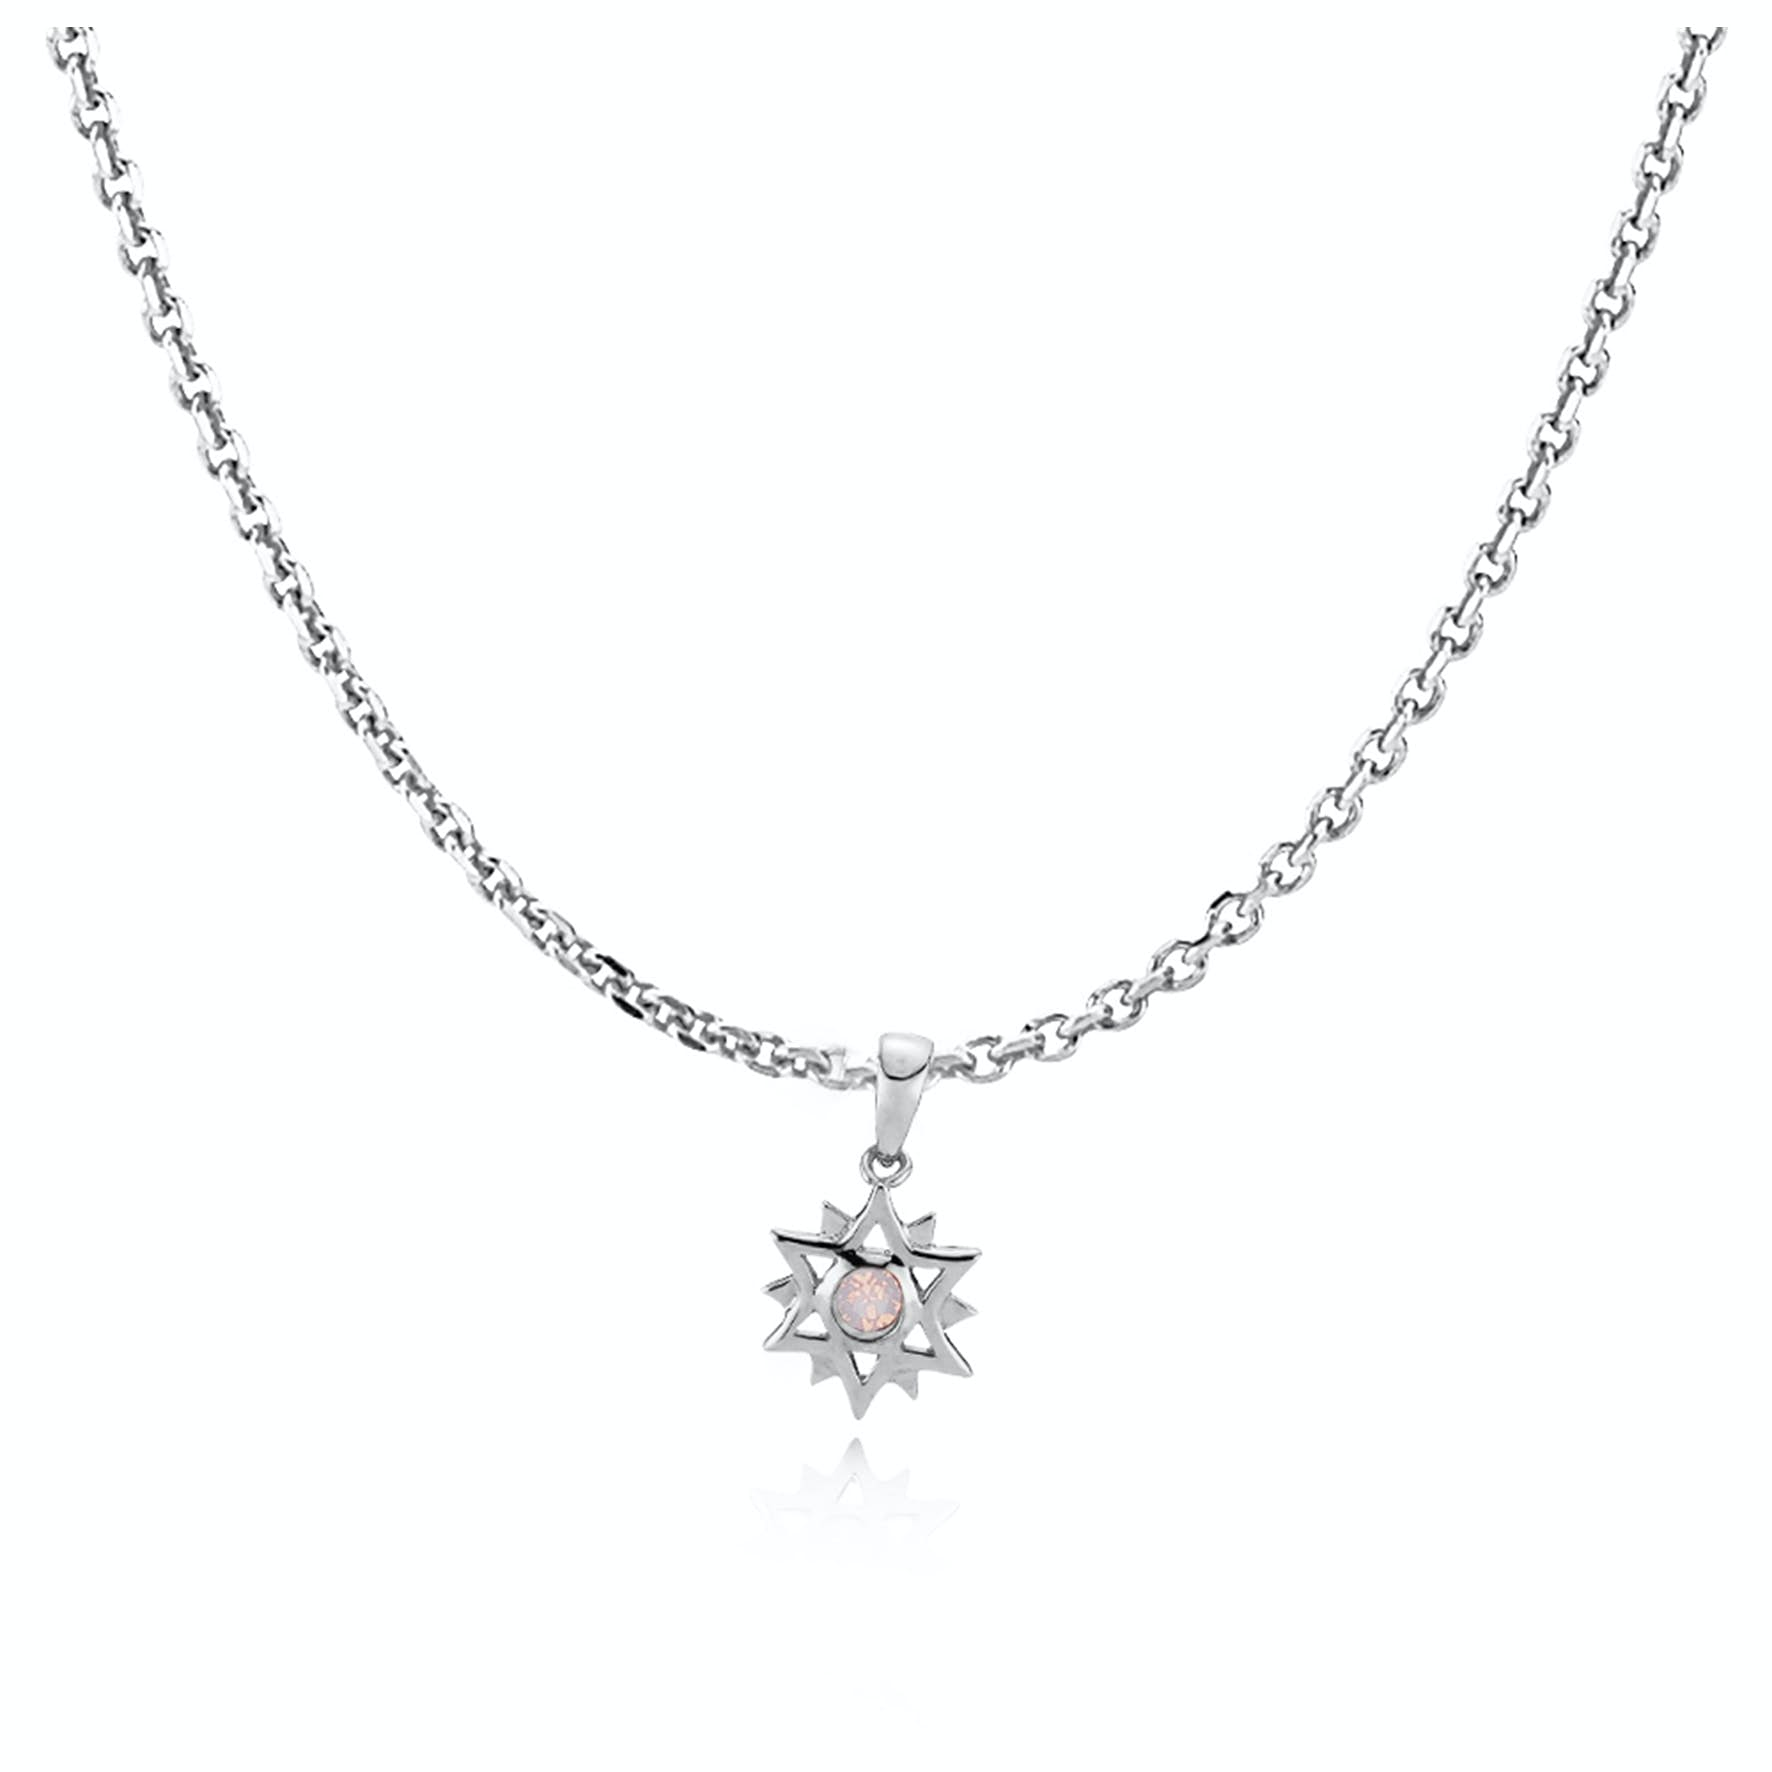 Olivia By Sistie Pendant Necklace Rose Opal von Sistie in Silber Sterling 925